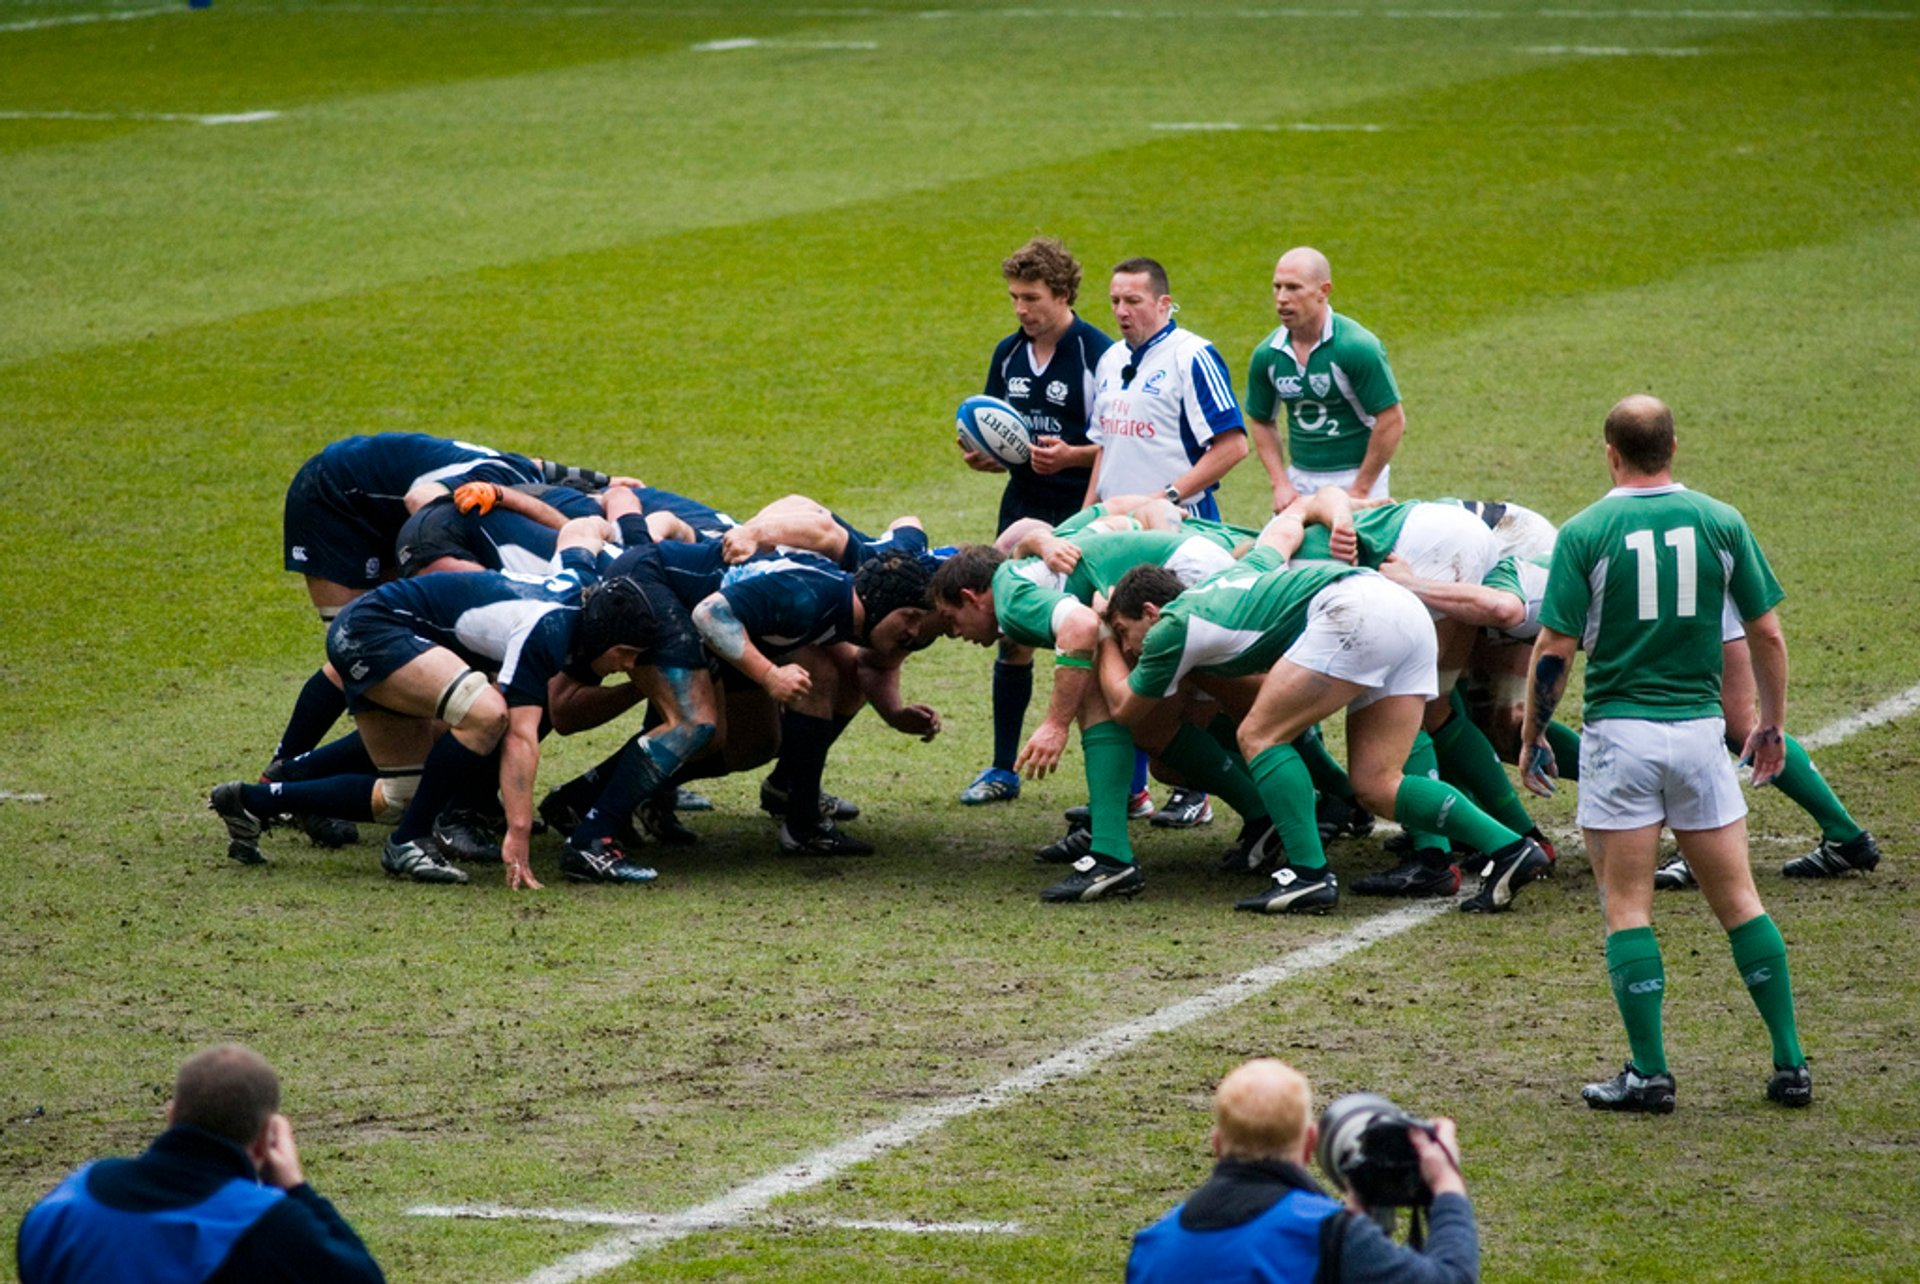 Rugby in Edinburgh: Six Nations Cup in Edinburgh 2019 - Best Time